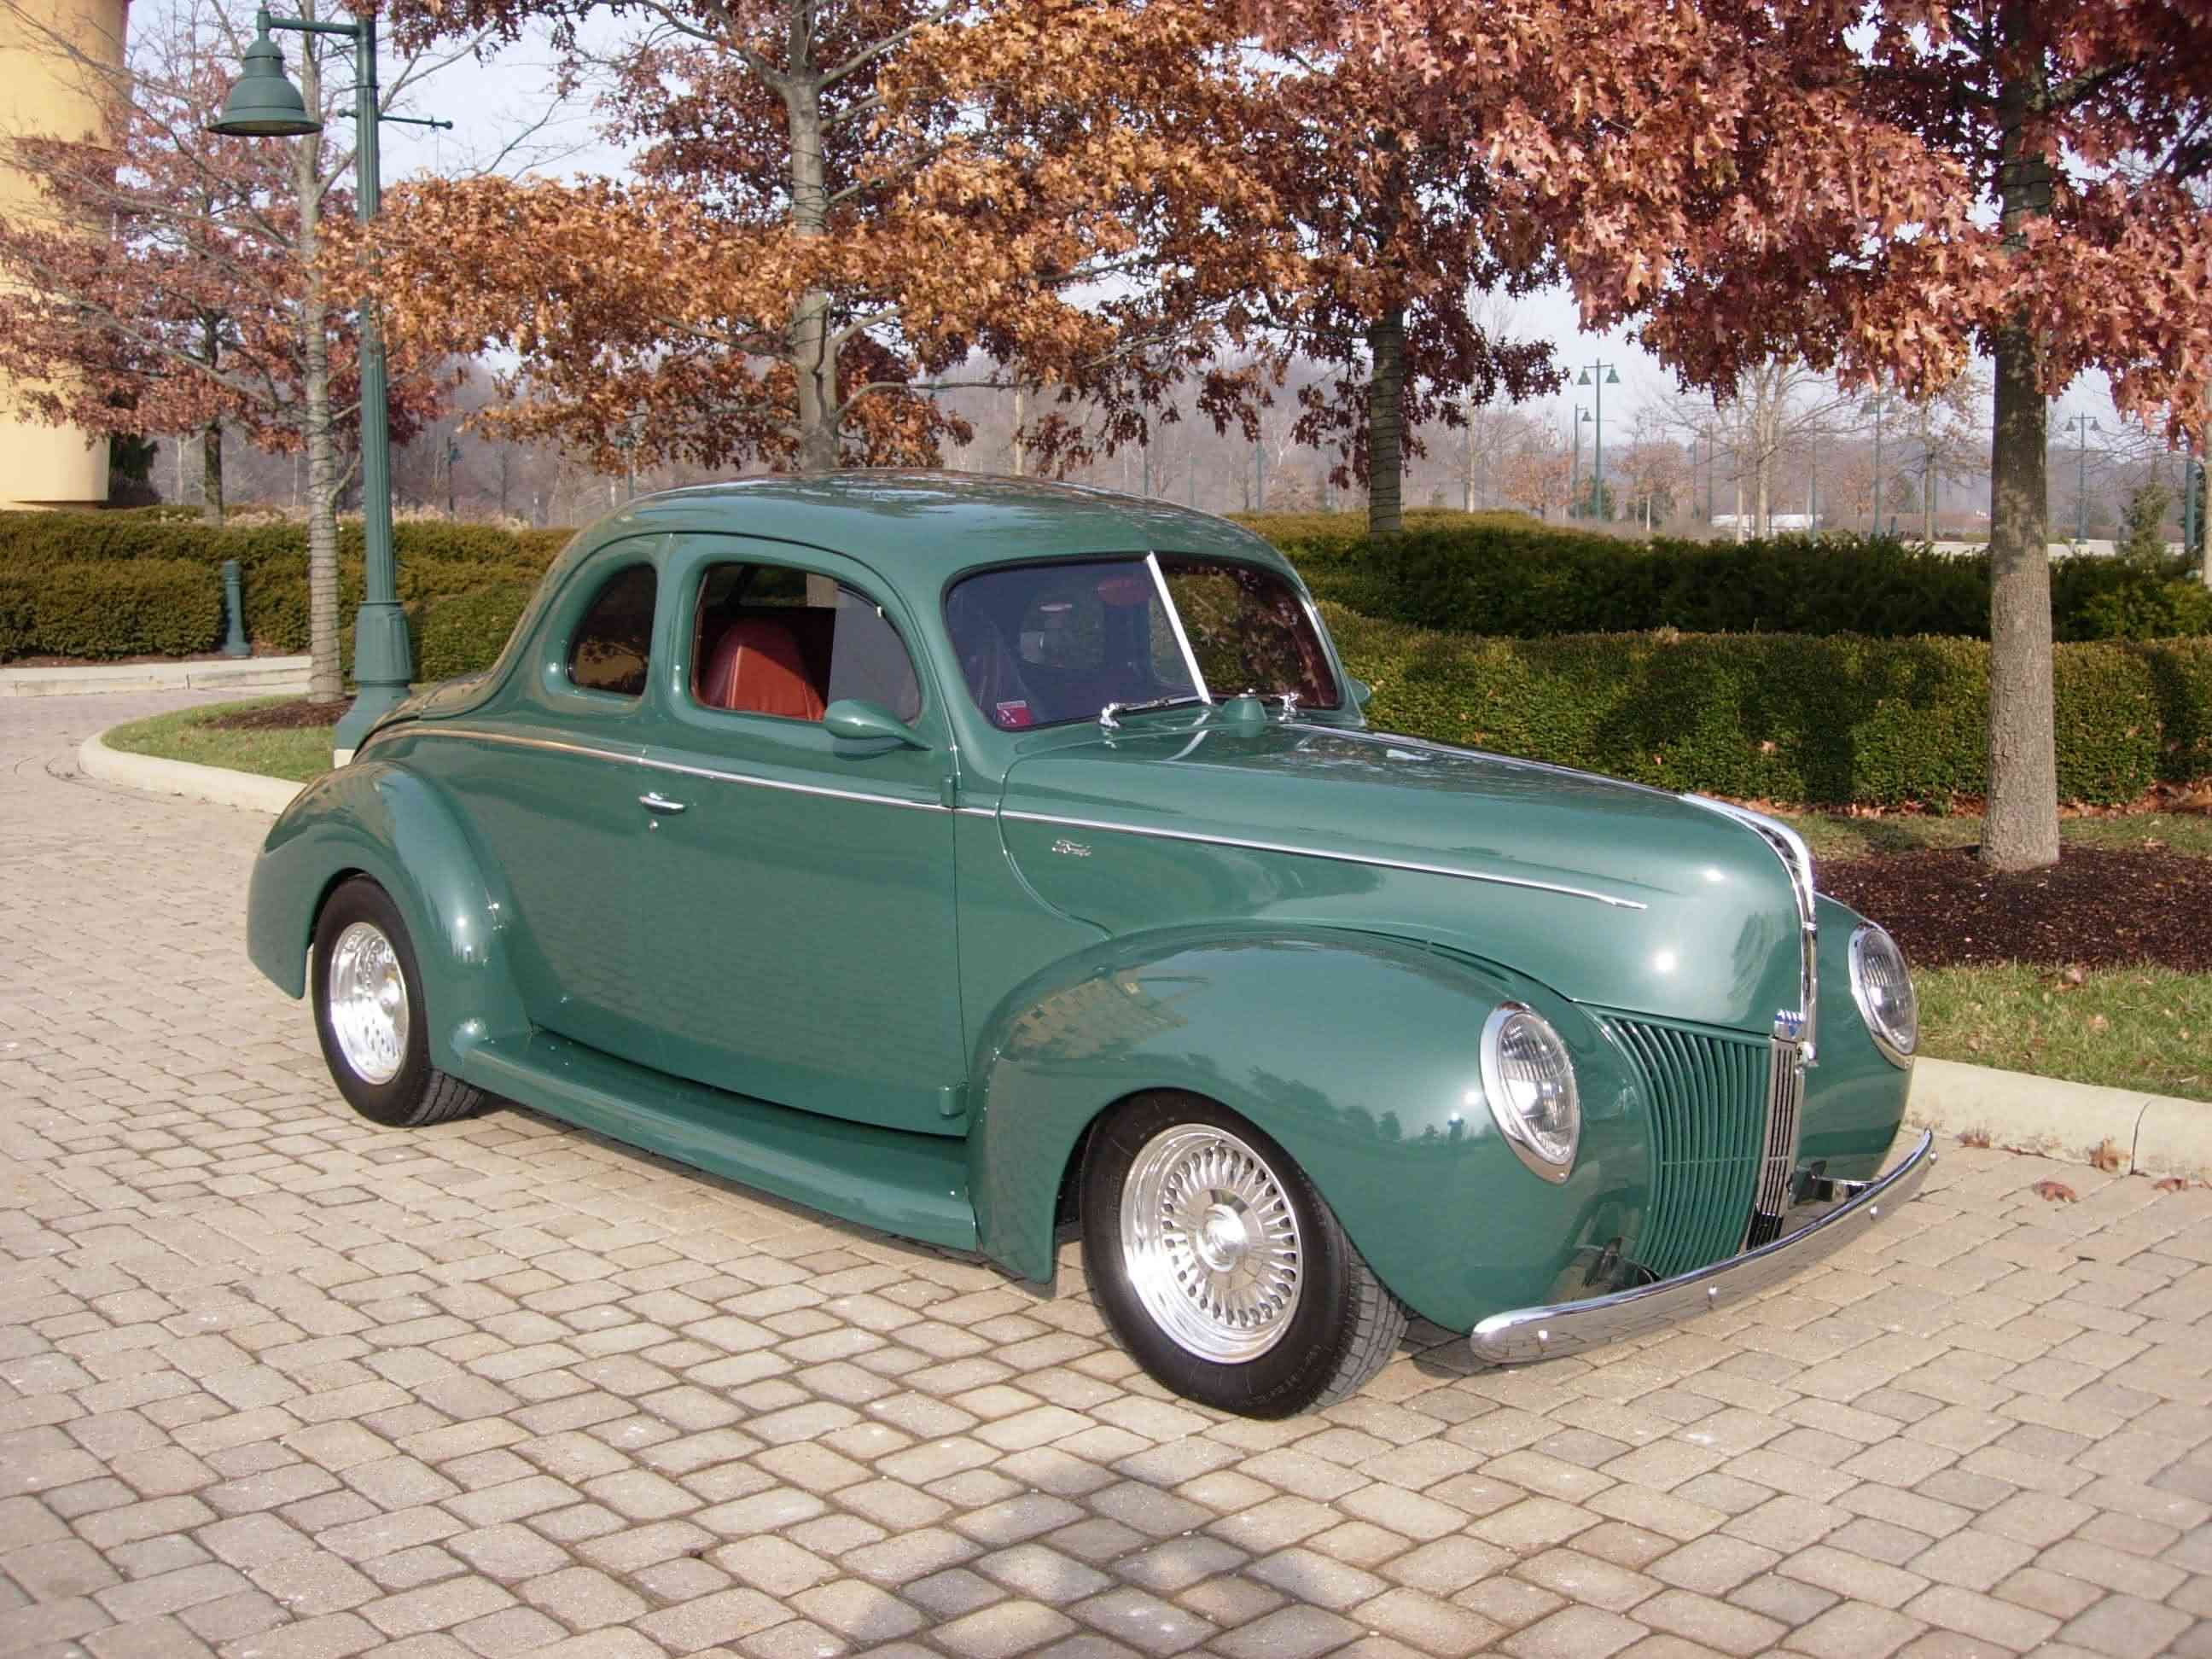 1940 Ford Coupe Classic Cars Usa Hot Rods Cars Classic Cars Trucks